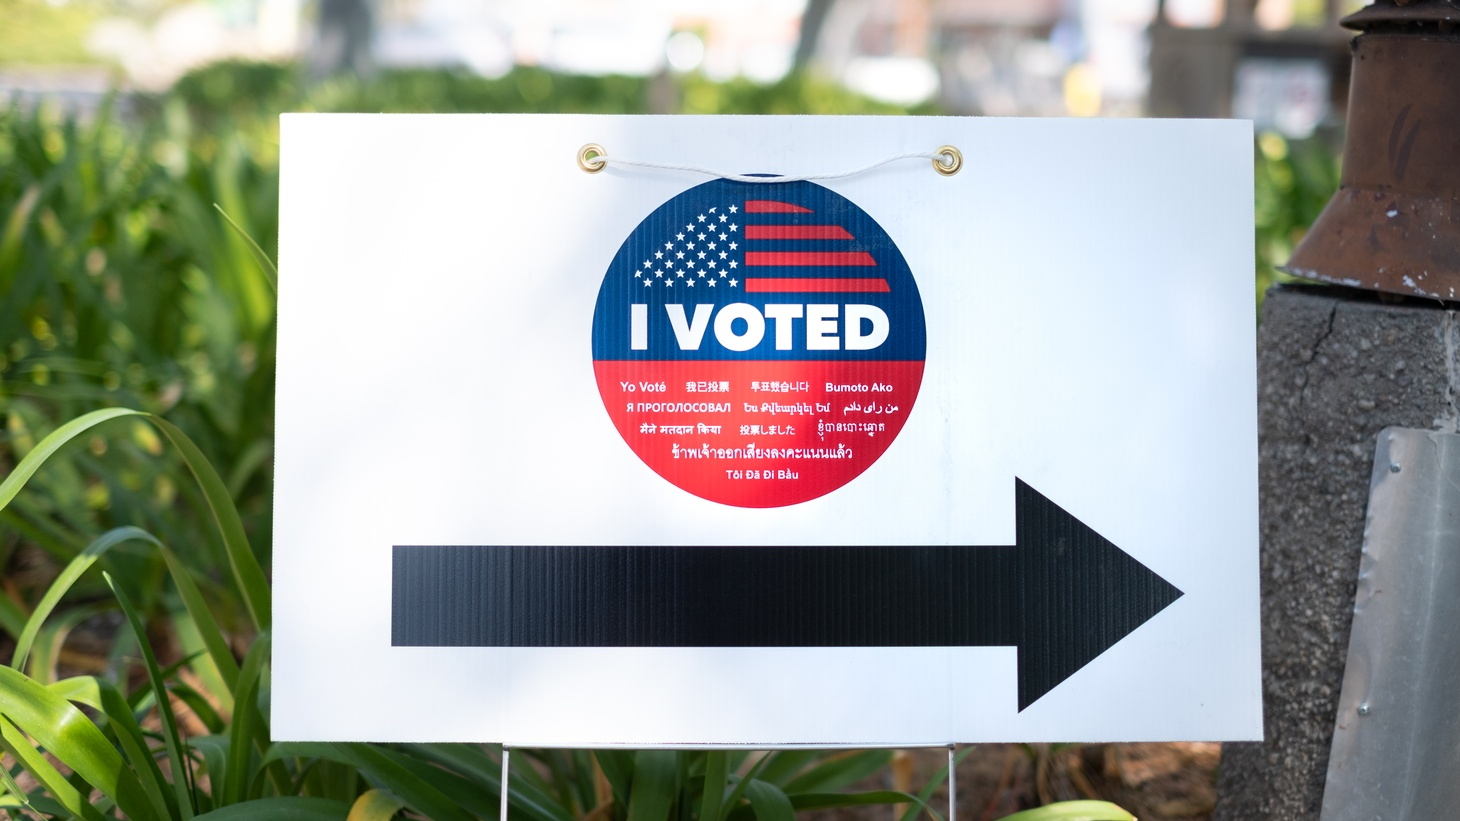 You can register to vote by filling out an online form, calling 800-345-VOTE to get a registration form mailed to your address, or picking up a form that's available at most DMVs, post offices, public libraries and government offices.